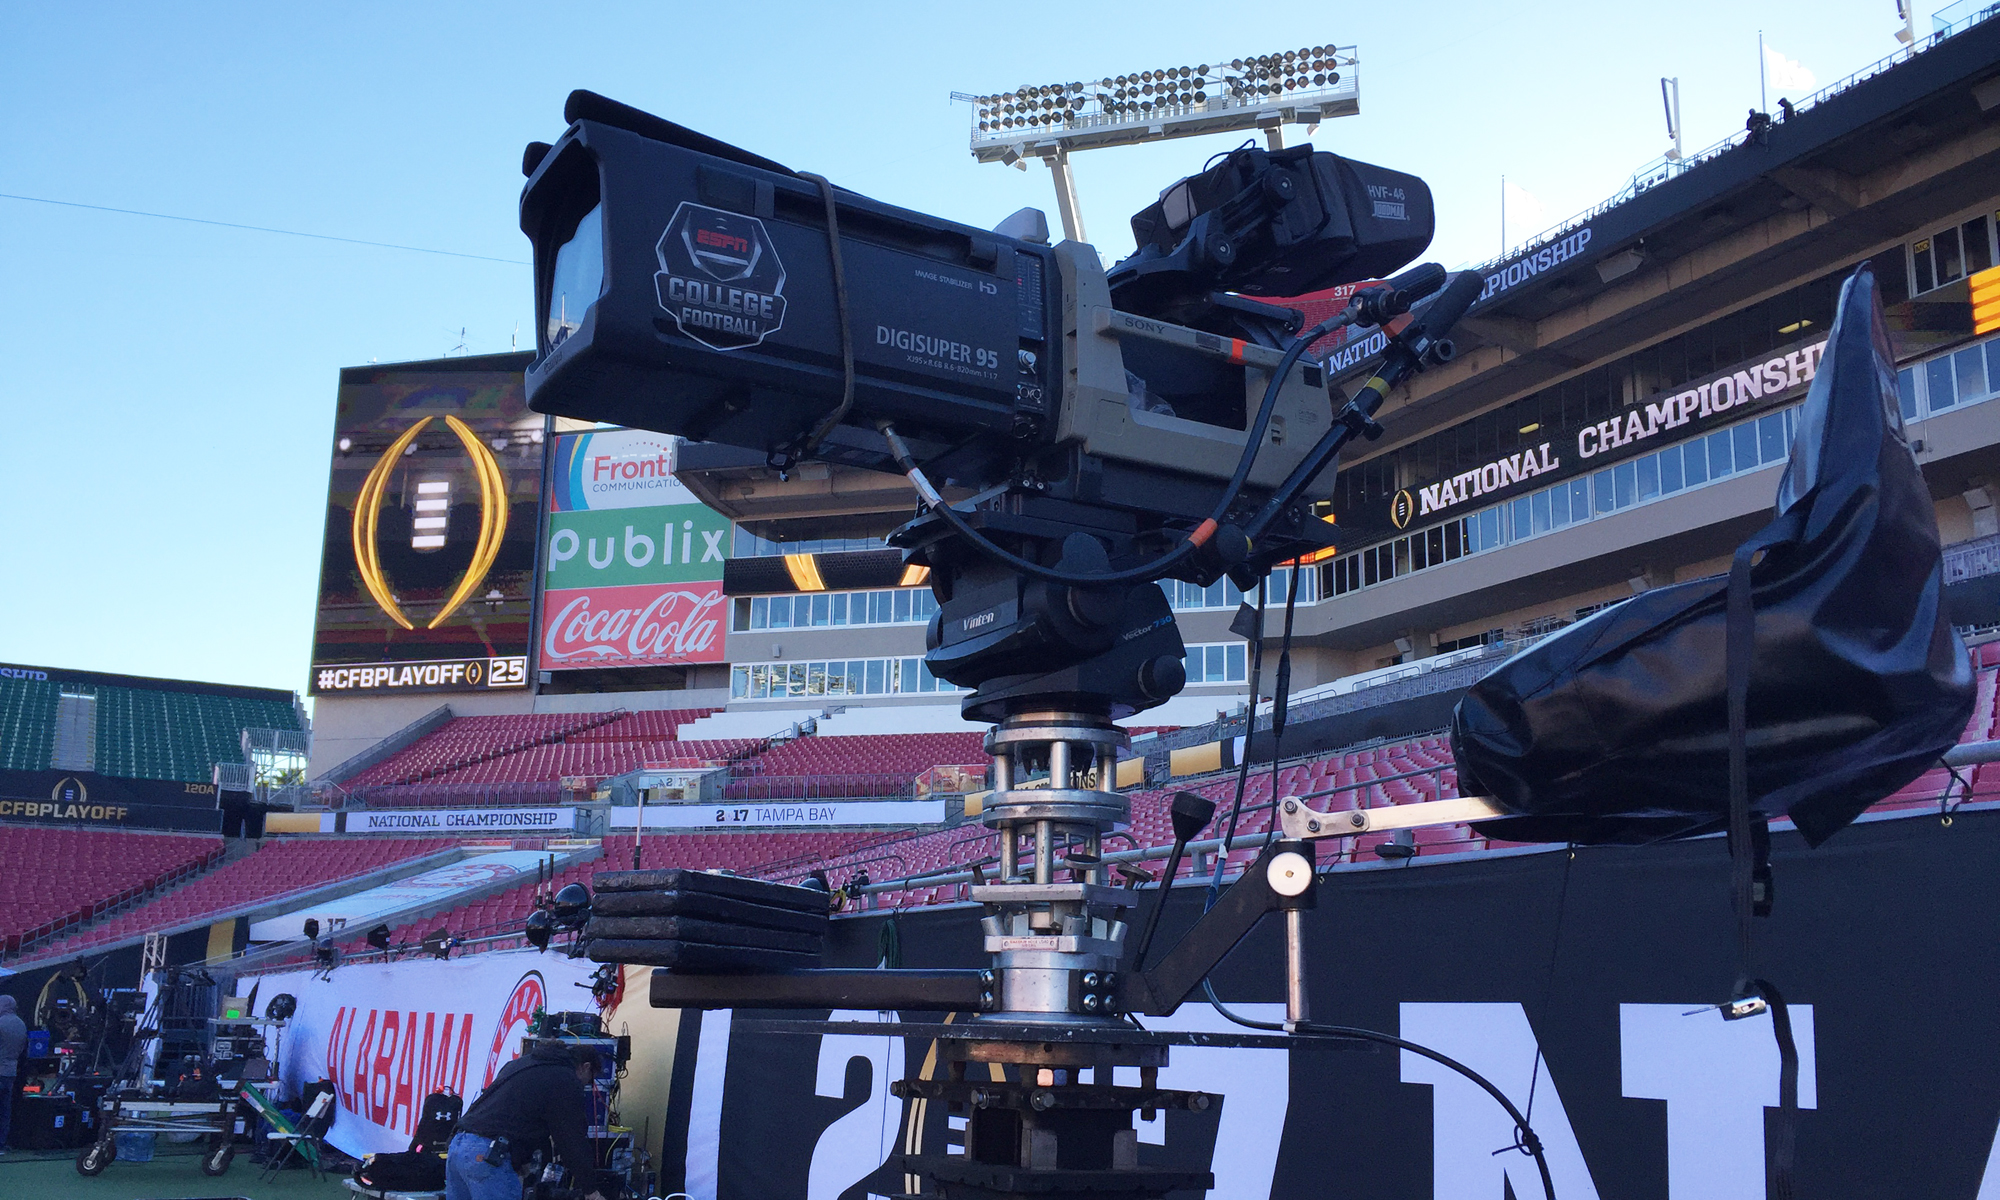 ESPN has affixed Canon's DIGISUPER 95 telephoto lens to the main sideline cart camera during Monday's CFP National Championship Game.